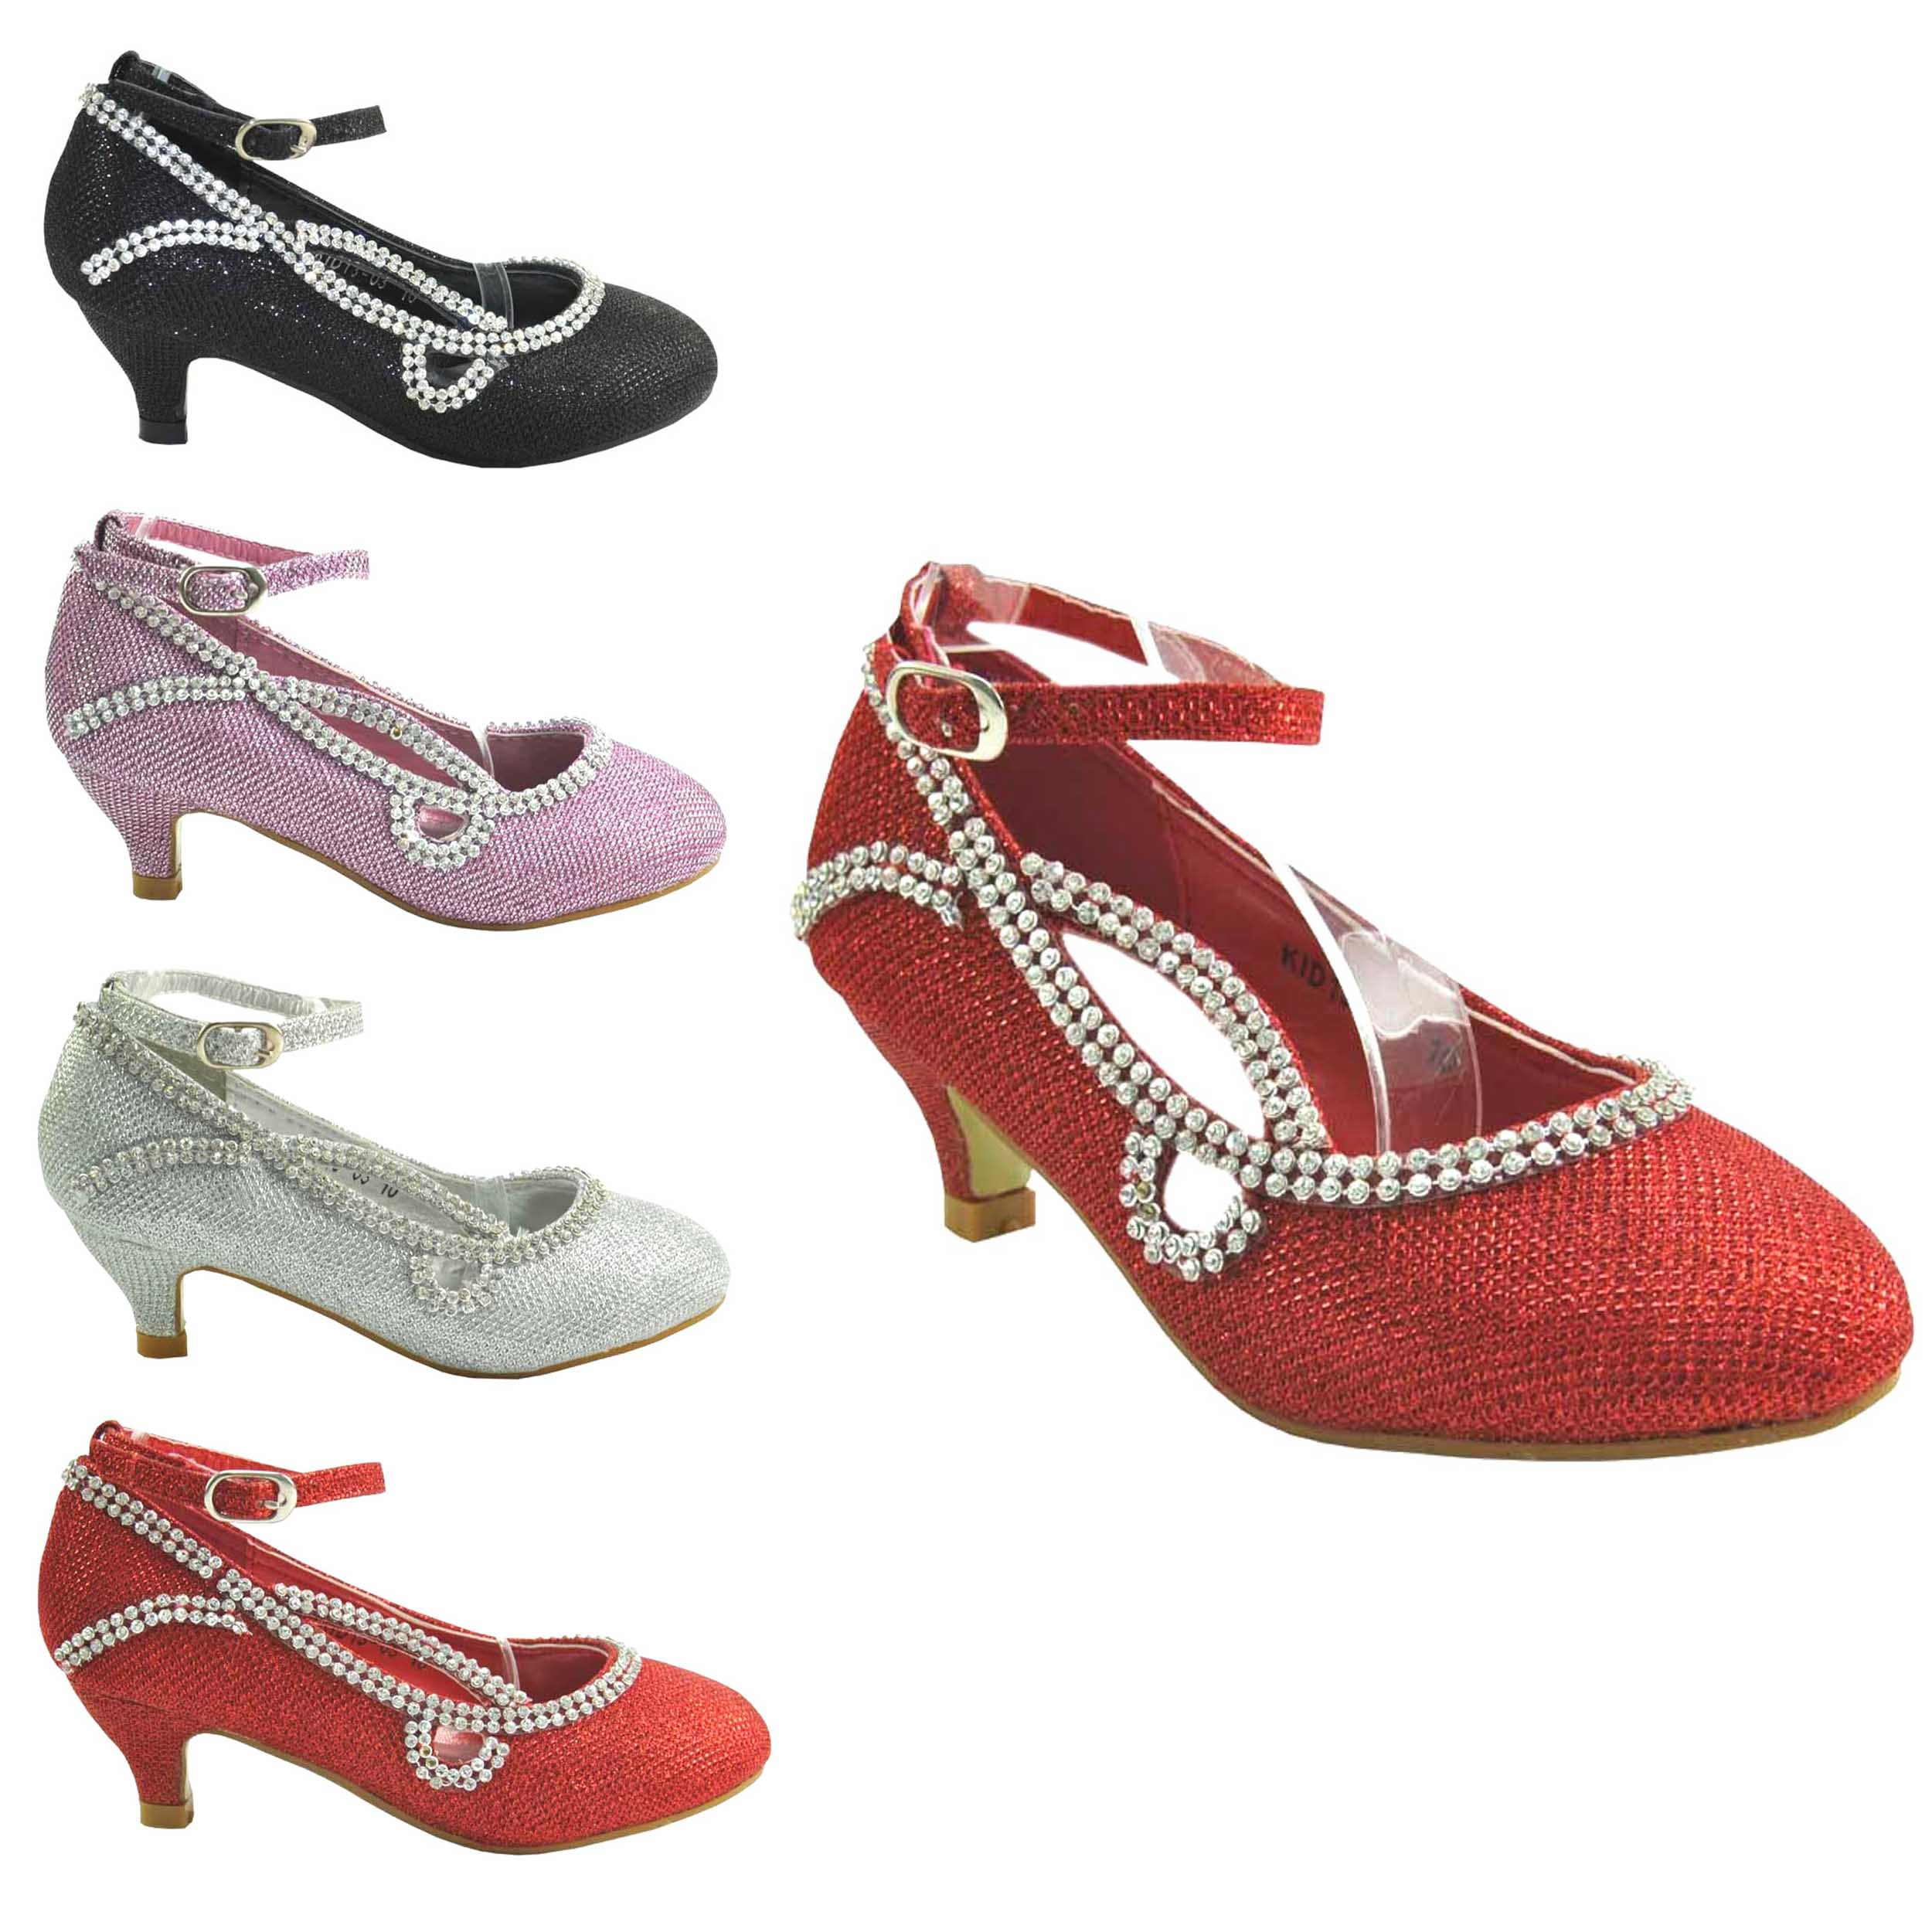 the gallery for gt high heels for size 13